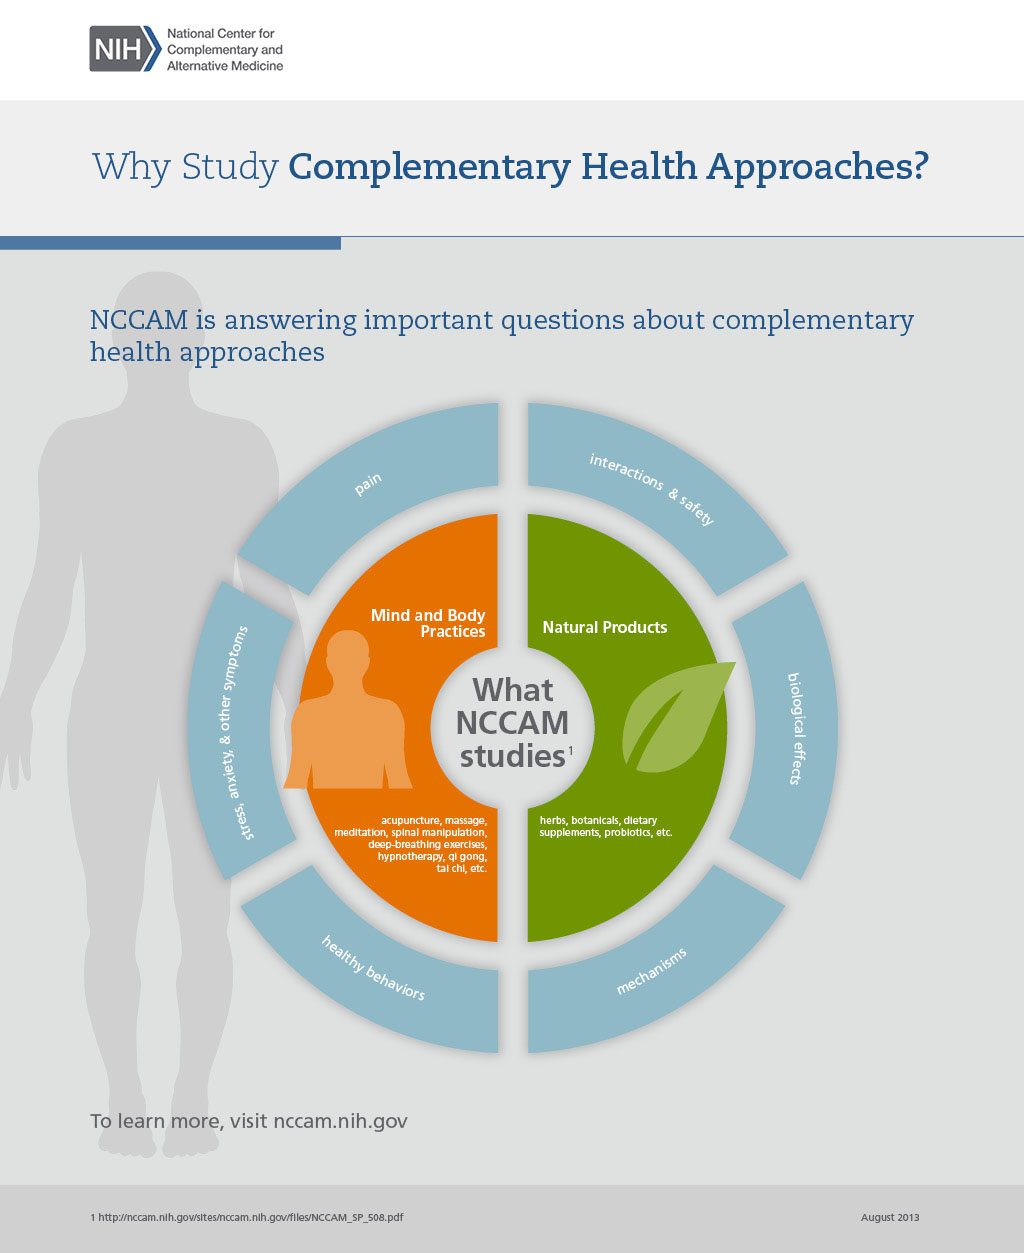 This graphic depicts two priority areas that NCCIH studies: mind and body practices and natural products.  Six important questions about complementary health approaches include: pain; interactions and safety; biological effects; mechanisms; healthy behaviors; and symptoms.